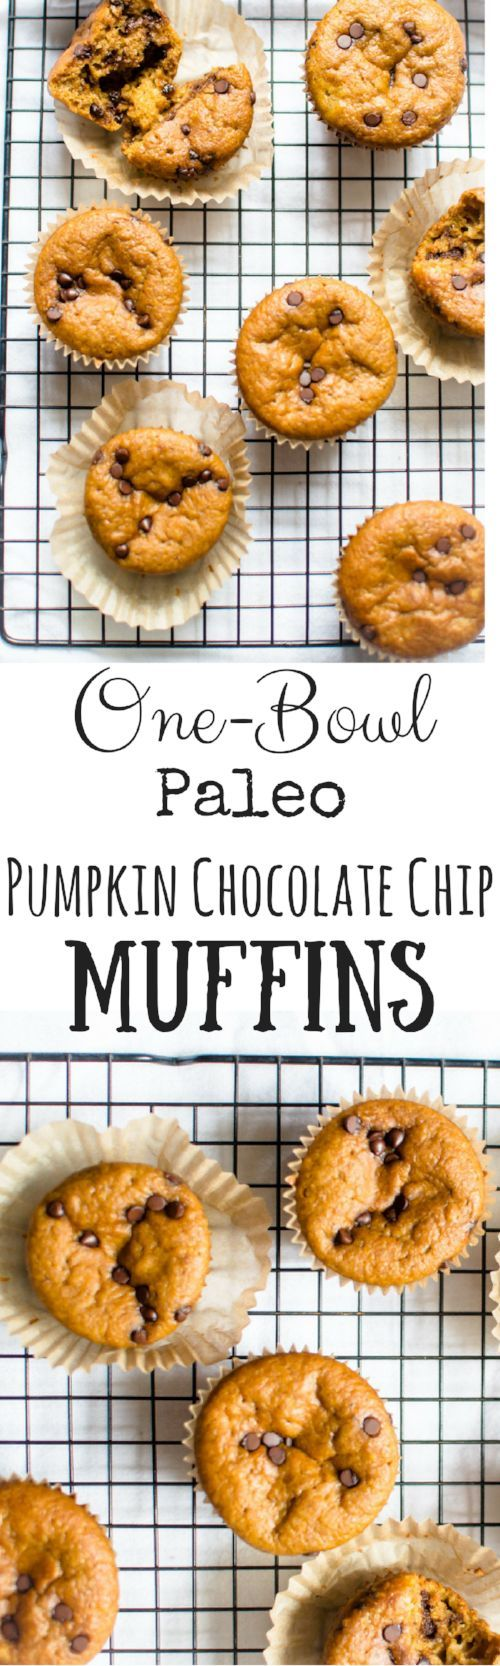 One-bowl recipes are a magical thing, especially when they produce something nourishing and delicious that your family will love! One-Bowl Paleo Pumpkin Chocolate Chip Muffins are super simple to make, great for a quick breakfast, snack, or lunch box filler and simply just tastes like the best parts of fall!